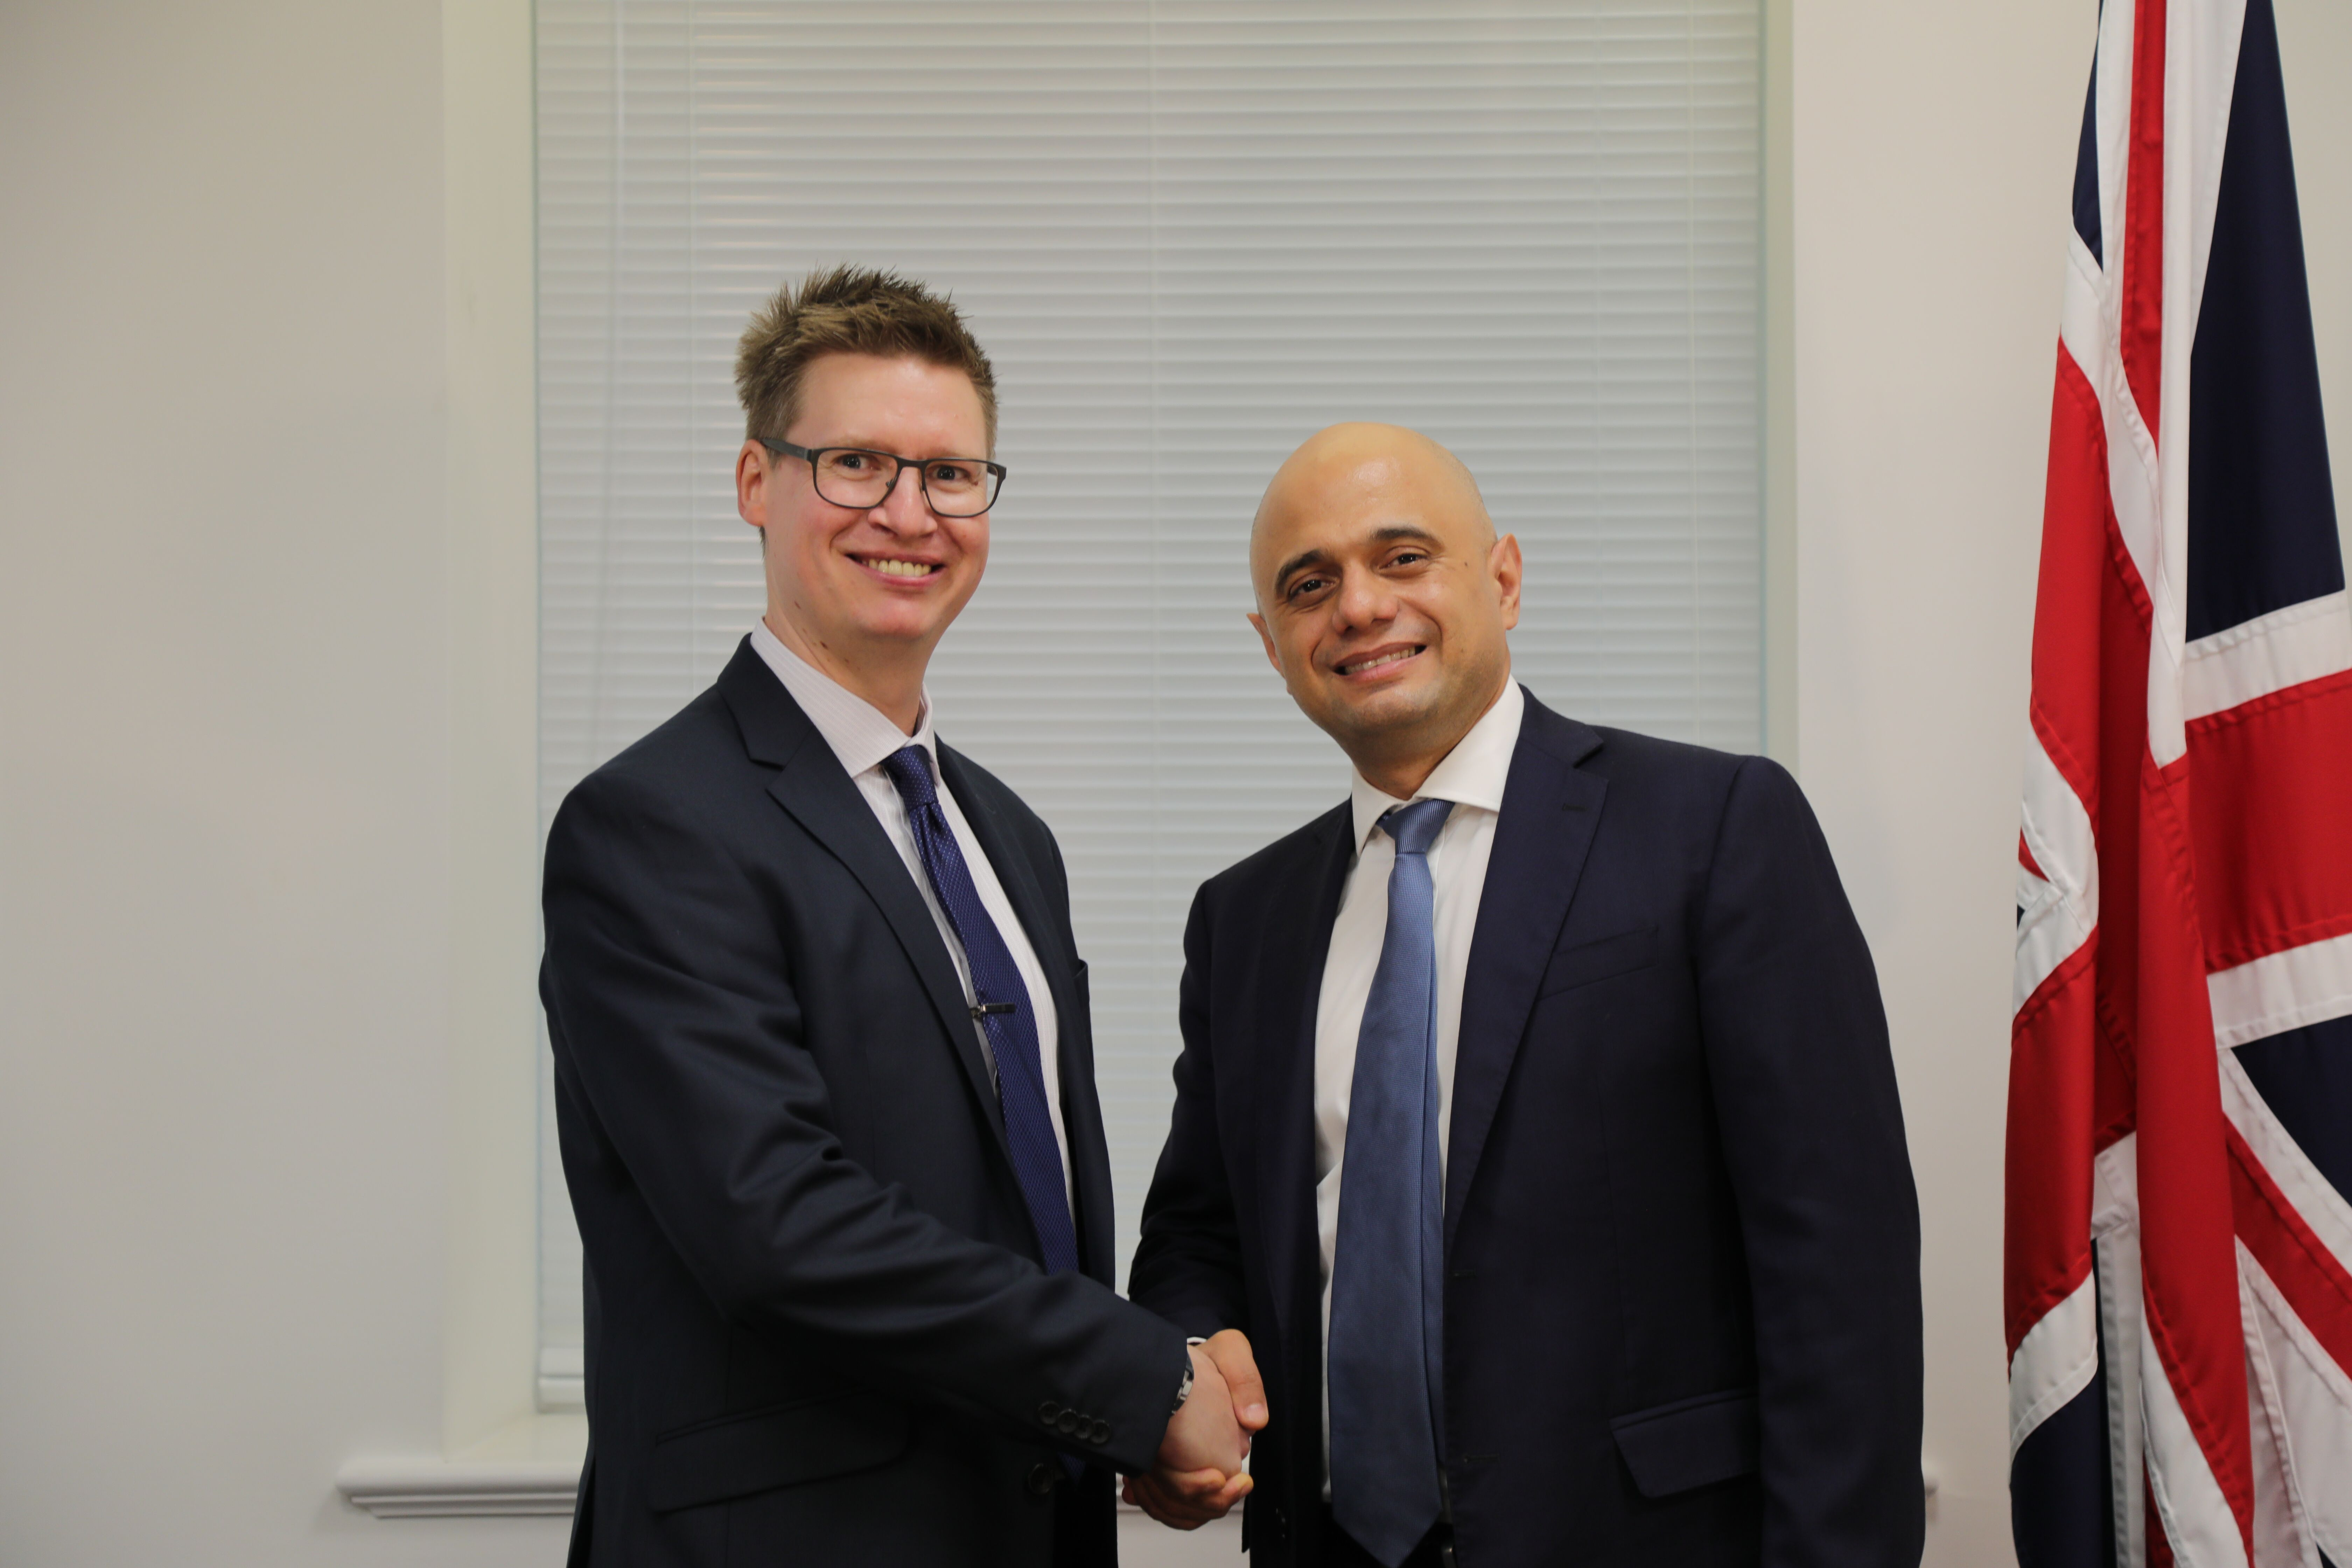 Steven Galton and Sajid Javid